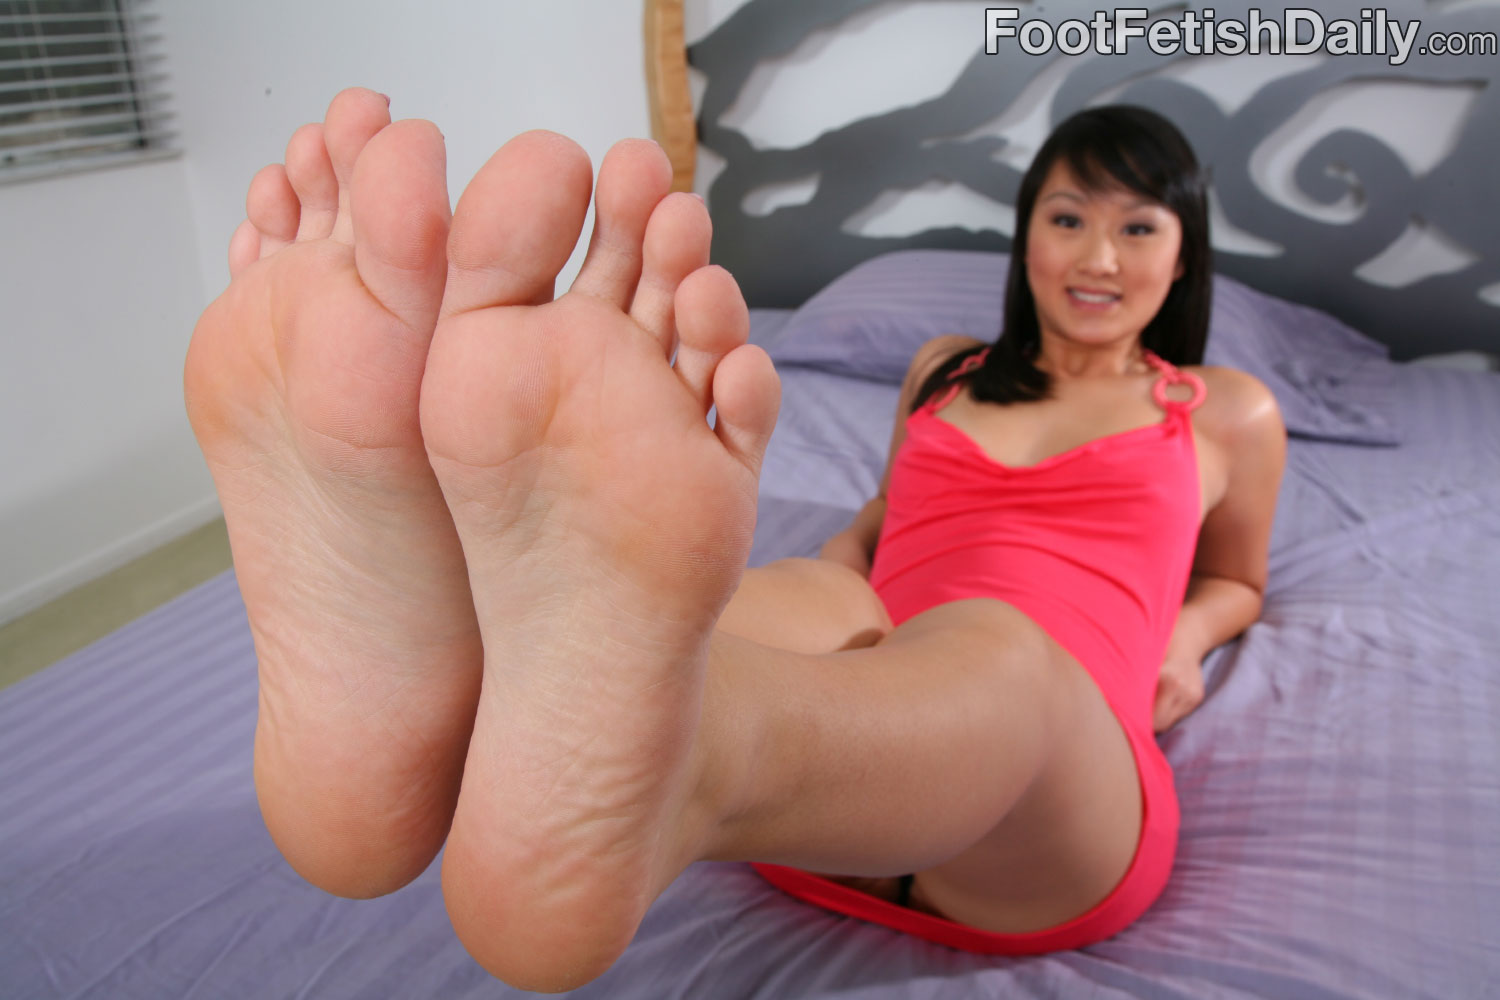 footjob links: